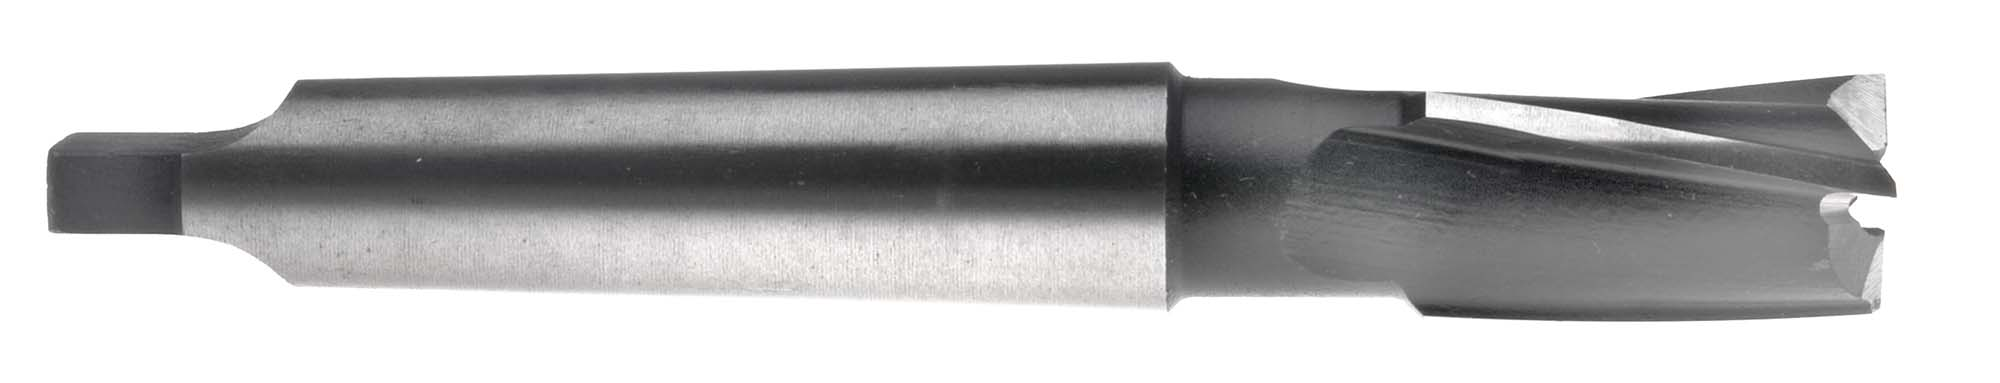 "15/16"" Taper Shank Counterbore, Interchangeable Pilot Type, High Speed Steel"